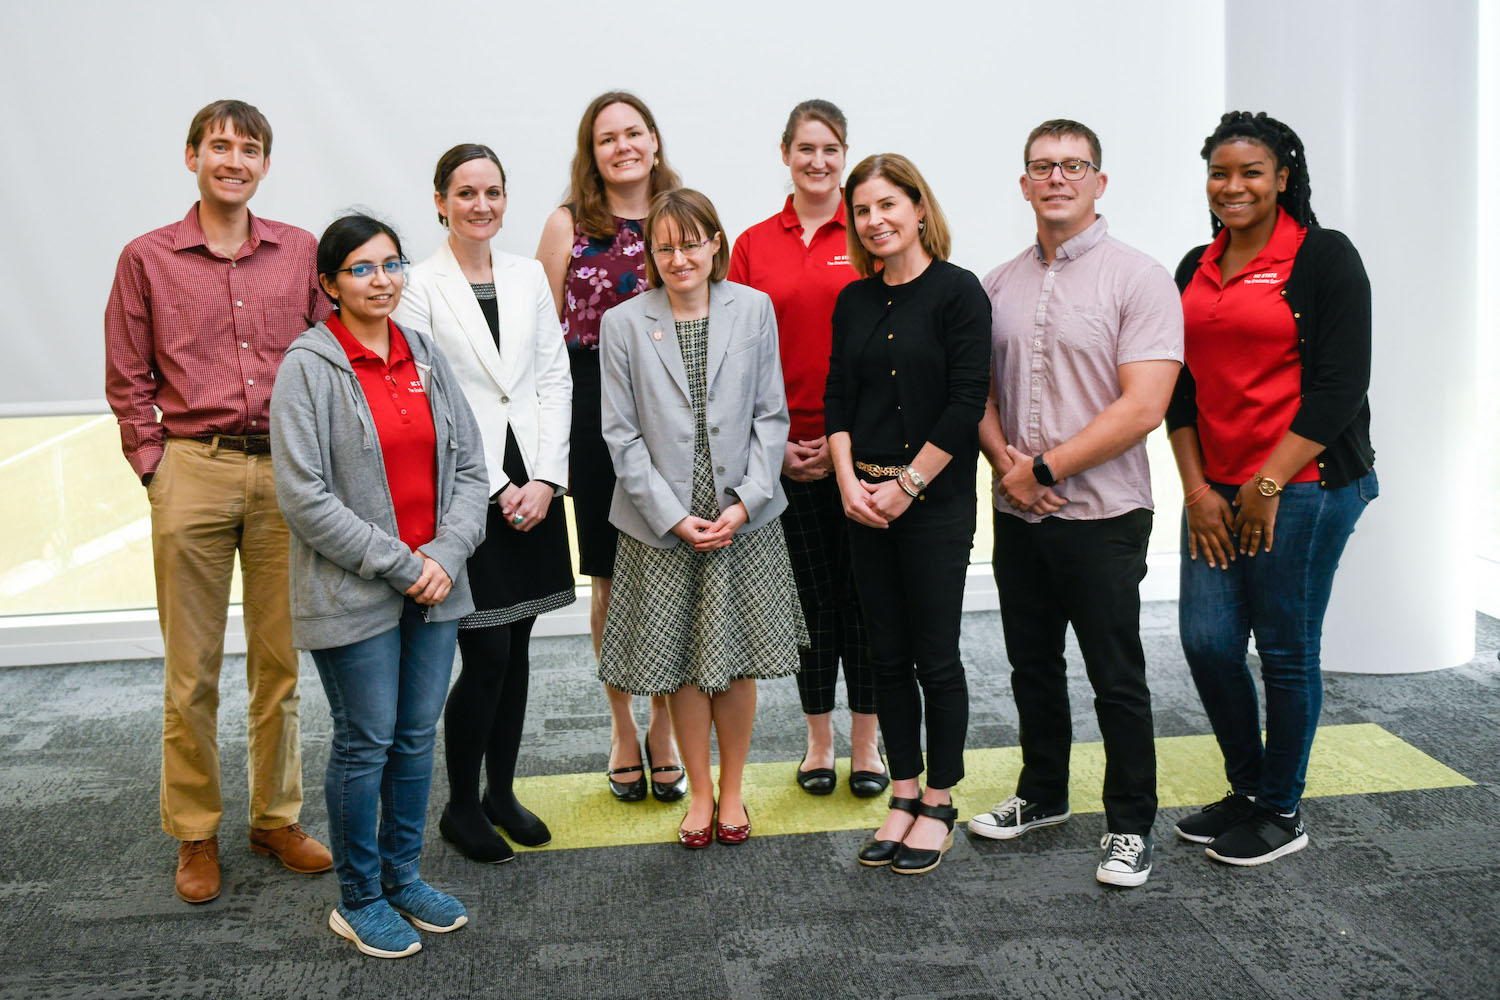 Professional Development Team Group Photo at 2019's 3MT Event